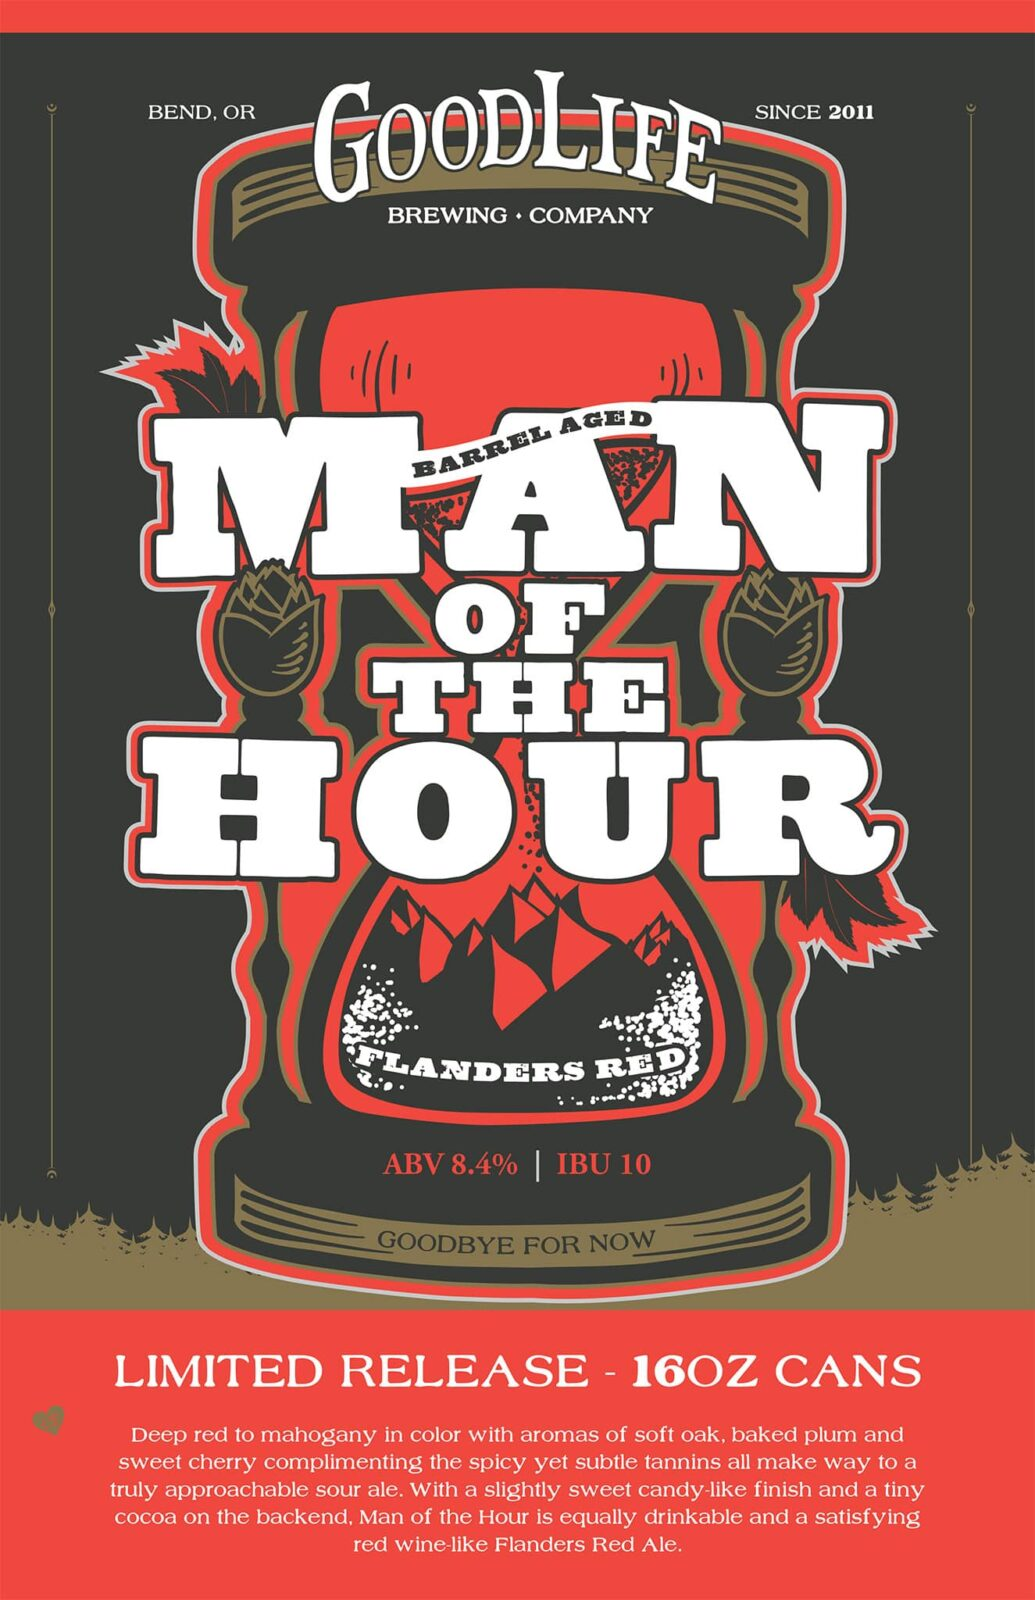 Man of the hour poster artwork